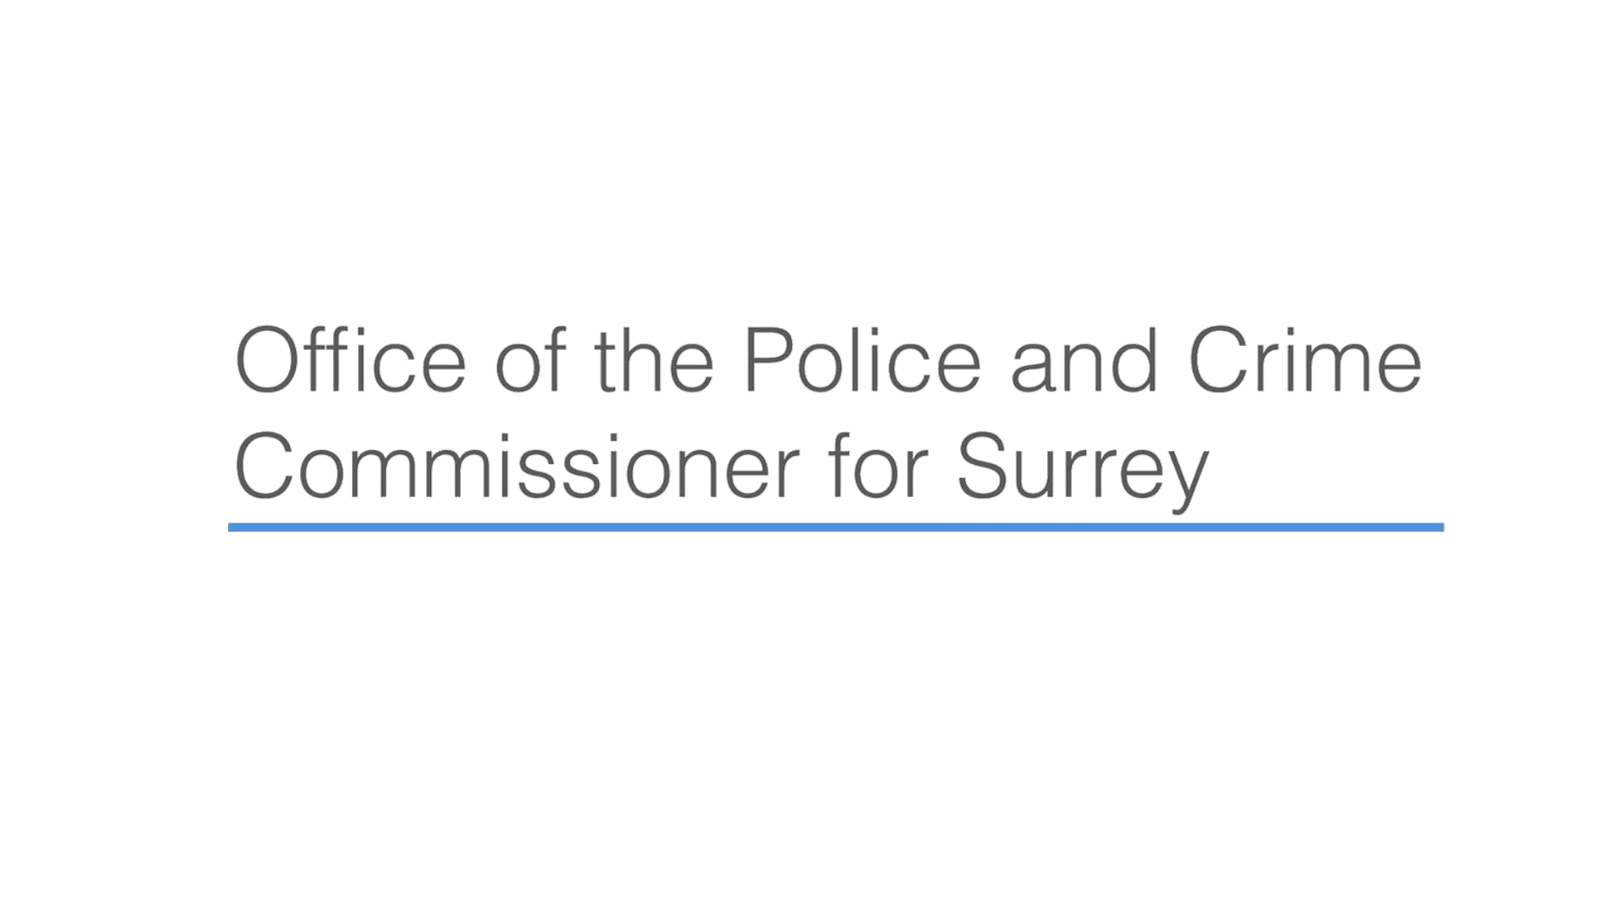 Statement by the Office of the Police and Crime Commissioner for Surrey